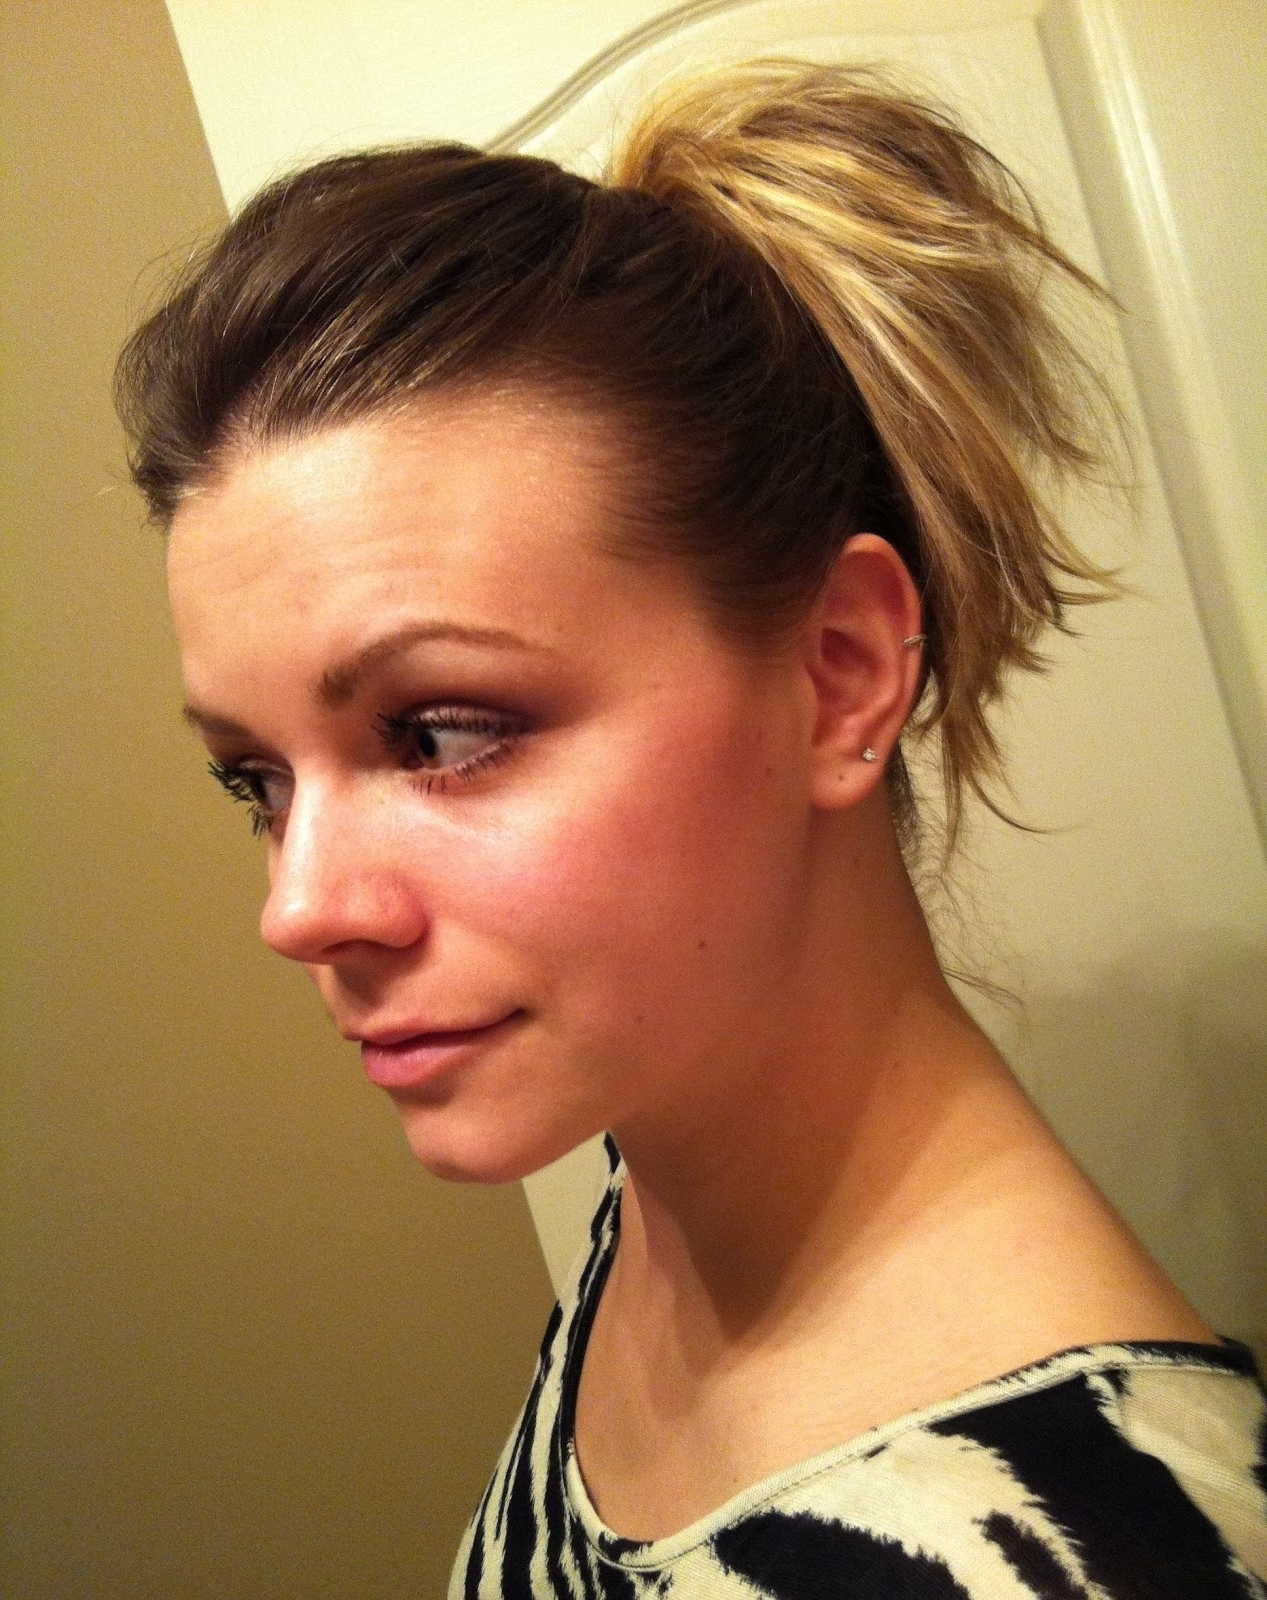 Bye Bye Beehive │ A Hairstyle Blog: How To Poof A Ponytail Without In Most Up To Date Updo Ponytail Hairstyles With Poof (View 10 of 20)